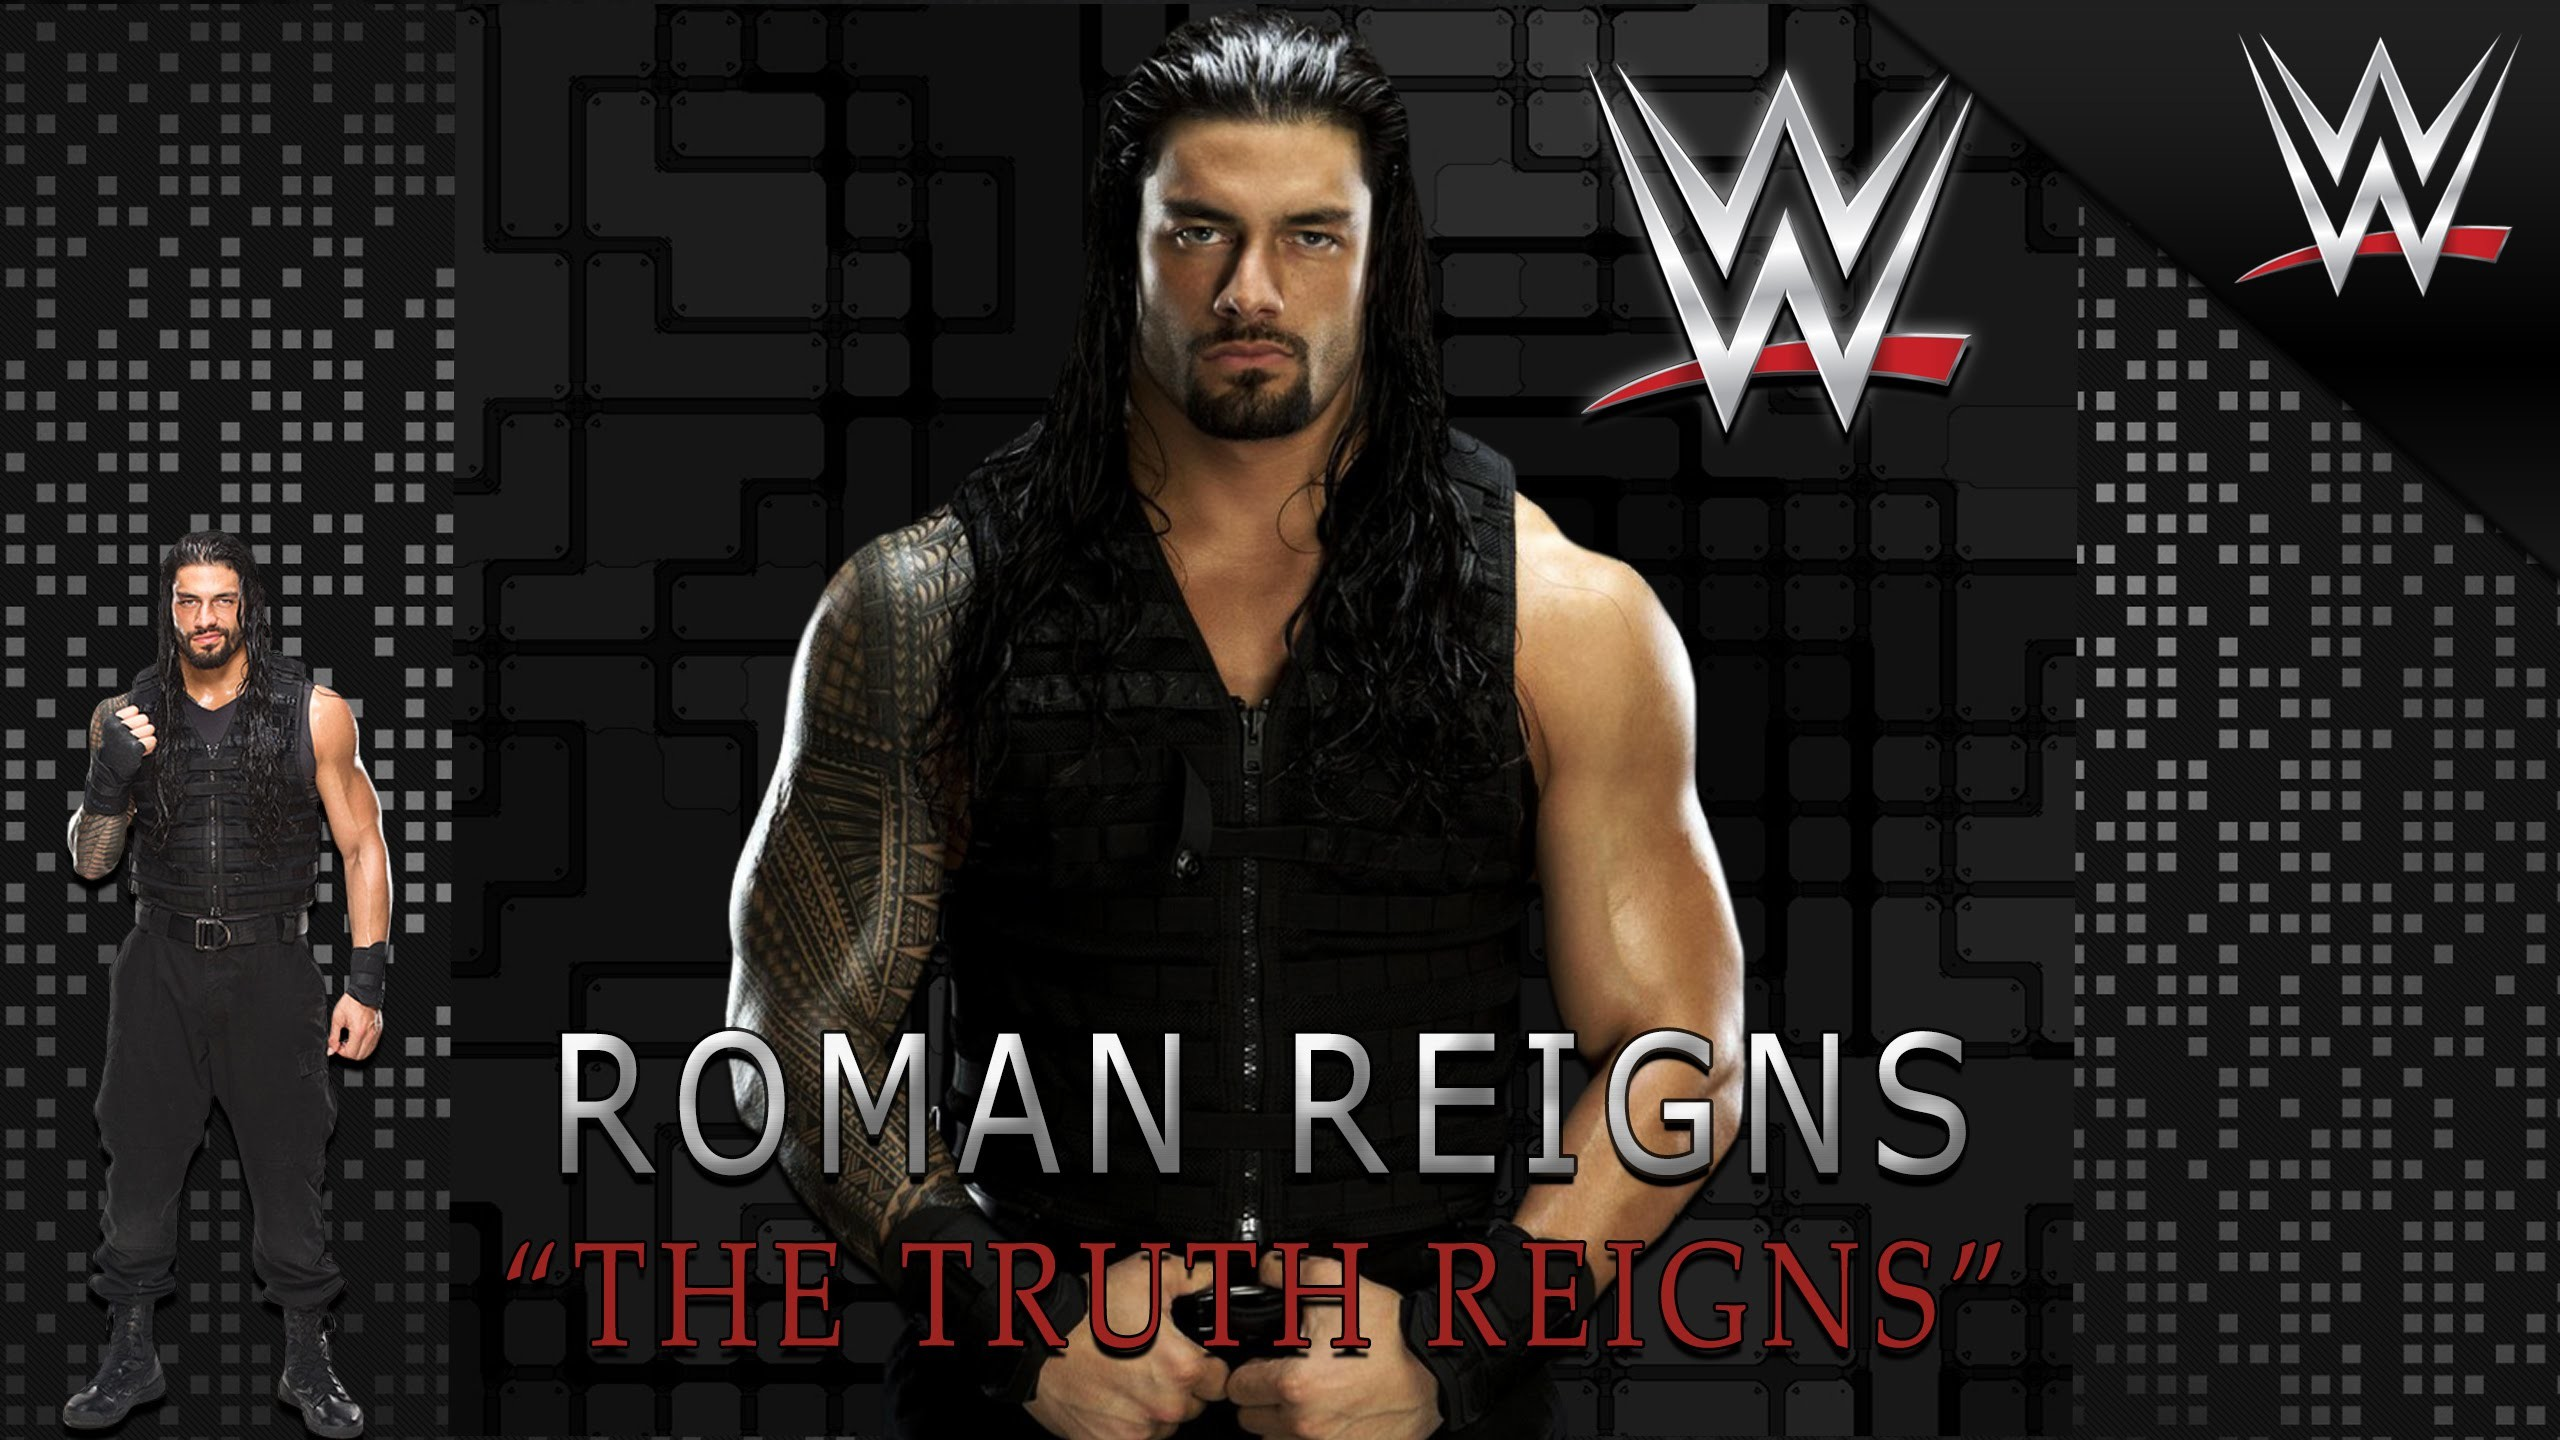 2560x1440 Roman Reigns WWE champ